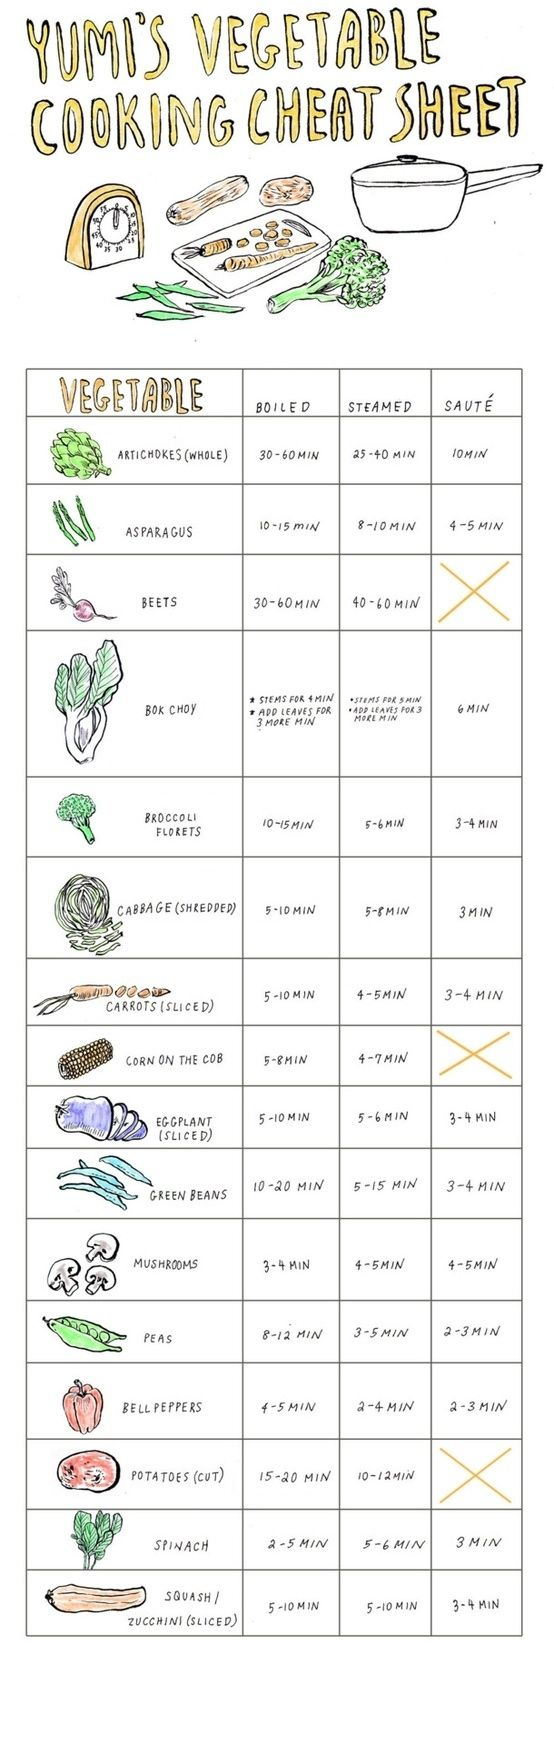 How to Know How Long to Cook Your Veggies